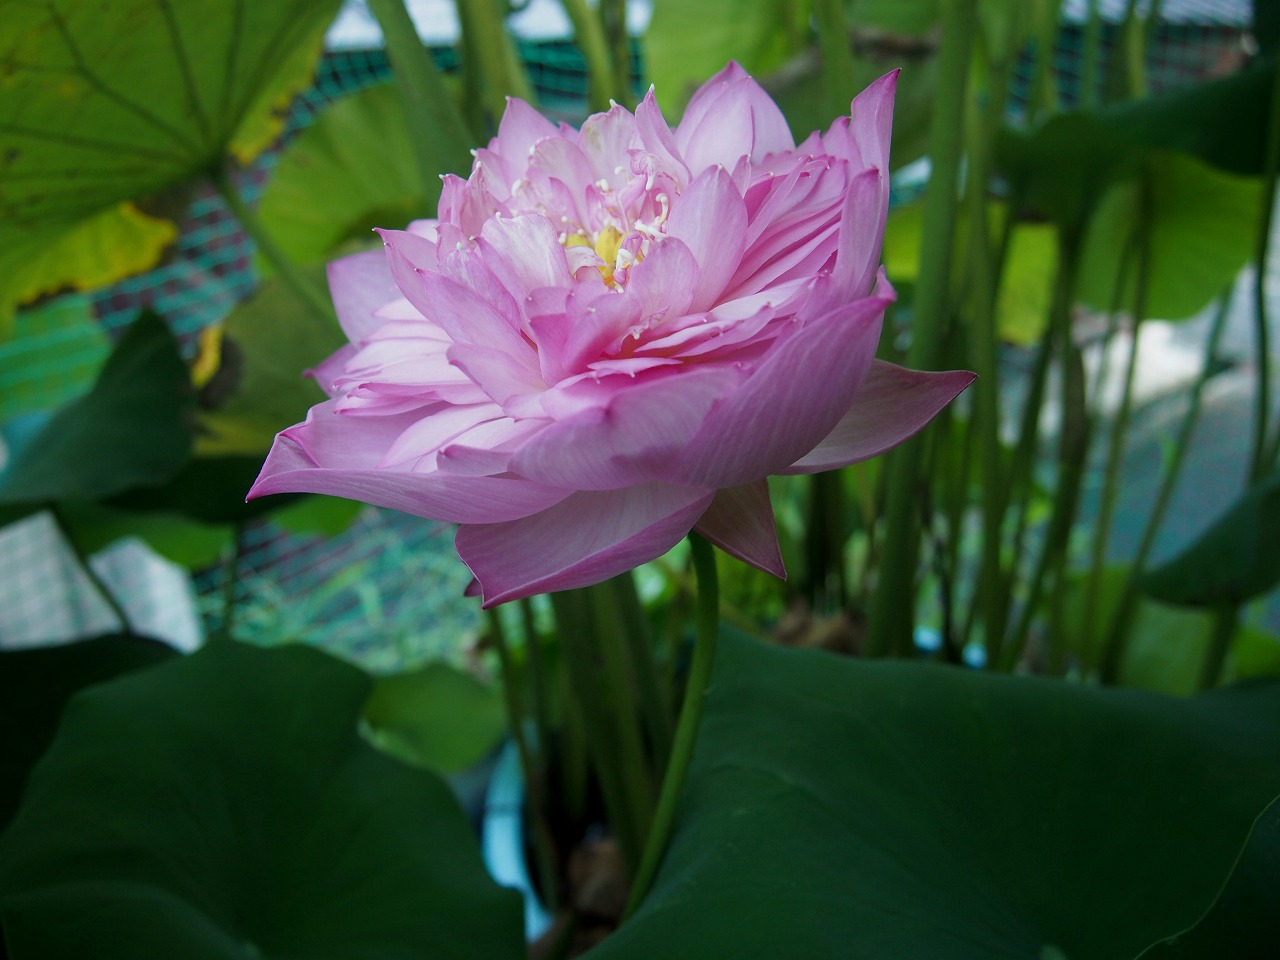 20160821-Lotus_Hishinko-O02_B.jpg